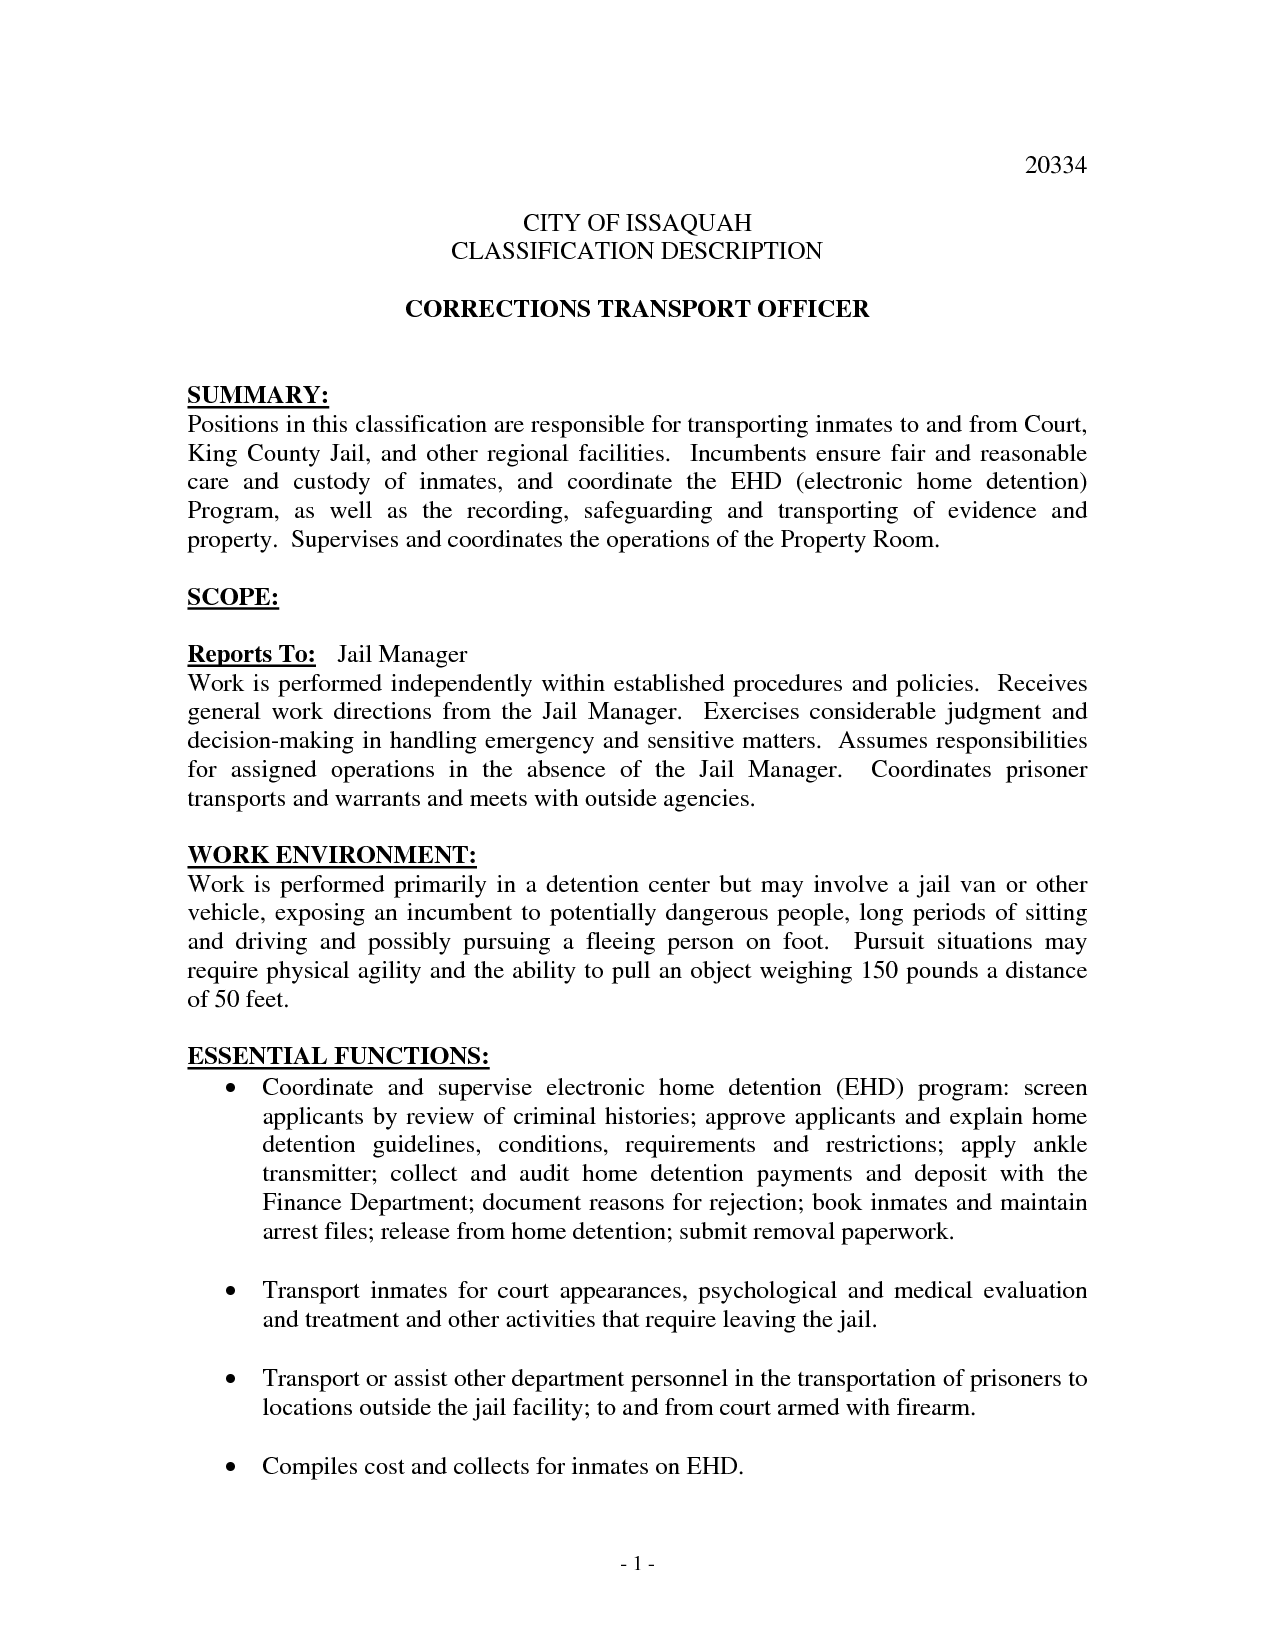 Correctional officer resume no experience http www for Sample resume for police officer with no experience